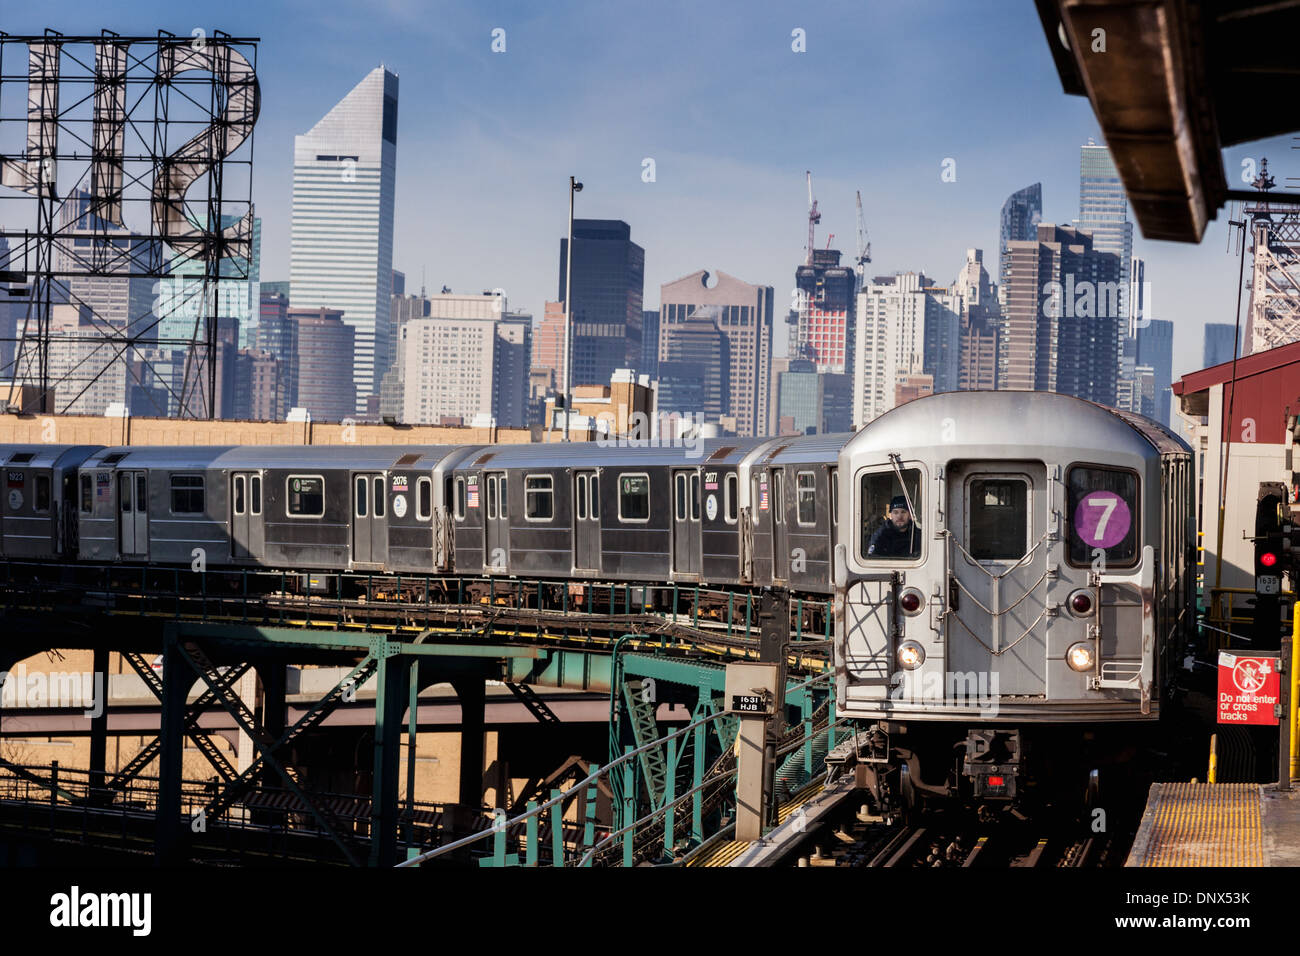 Number seven 7 train, Flushing bound, arrives at station in Queens, New York City - Stock Image